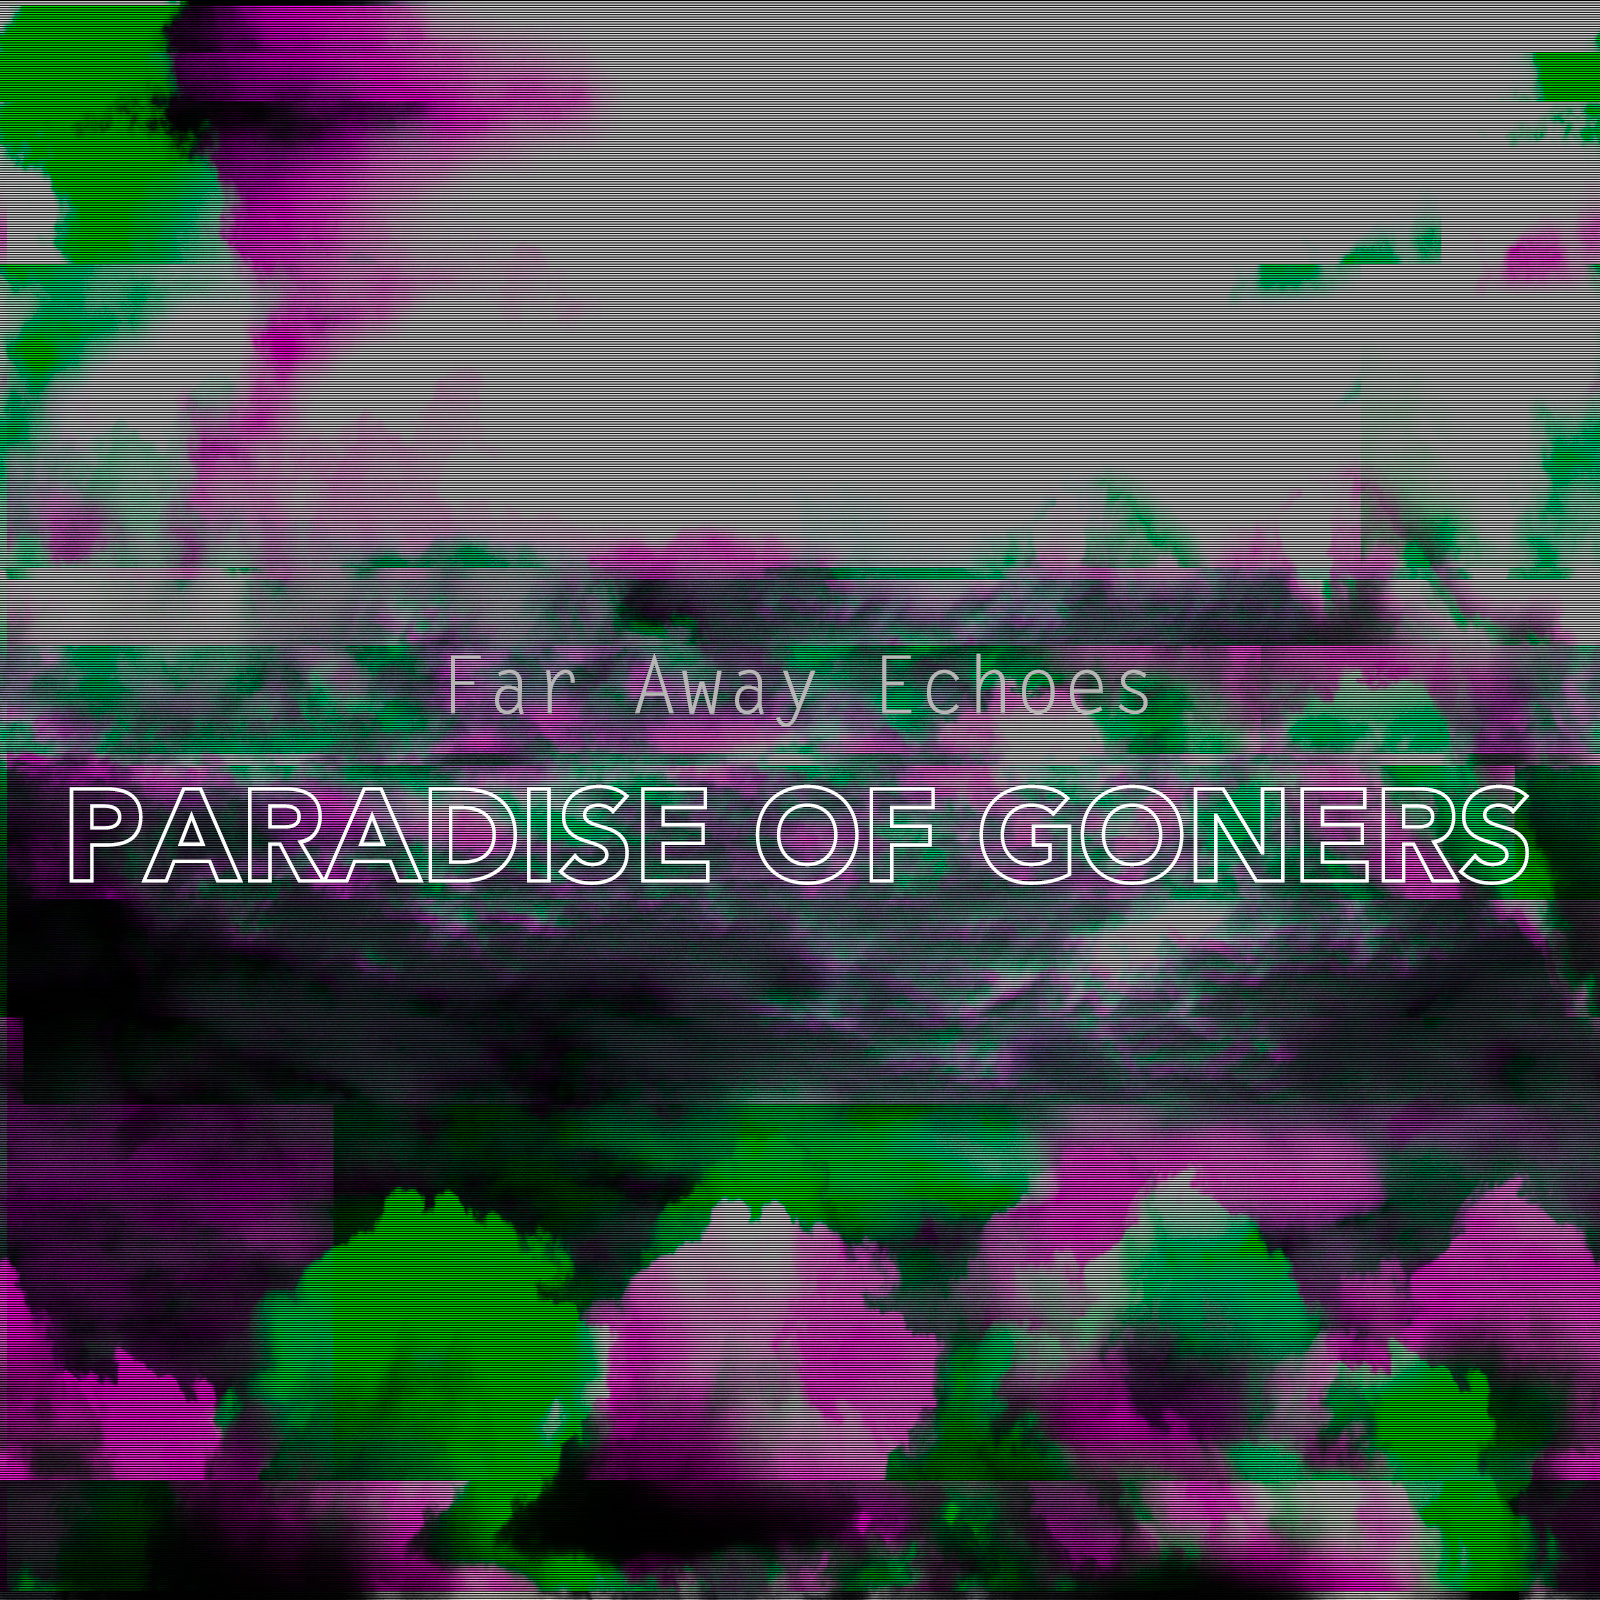 Paradise Of Goners (Far Away Echoes album)